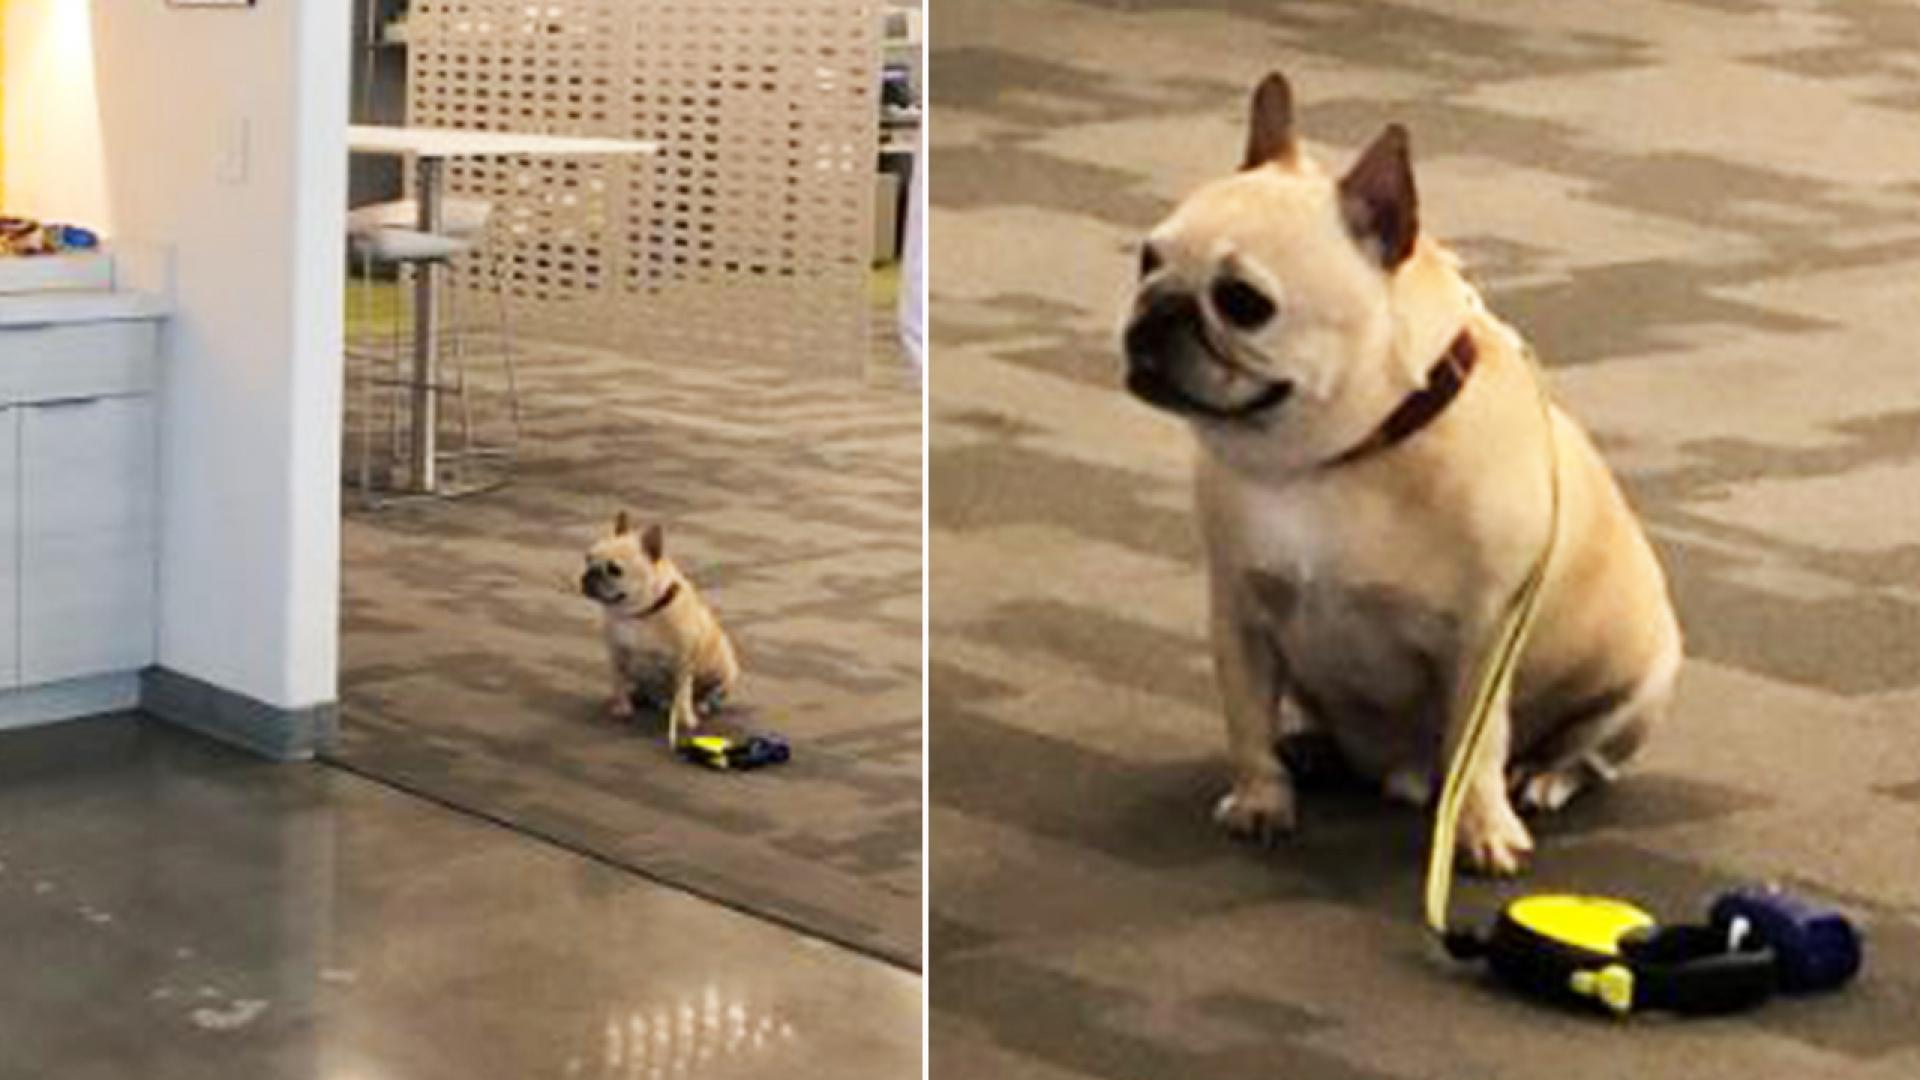 A Frenchie named Max waits obediently outside the office cafeteria.